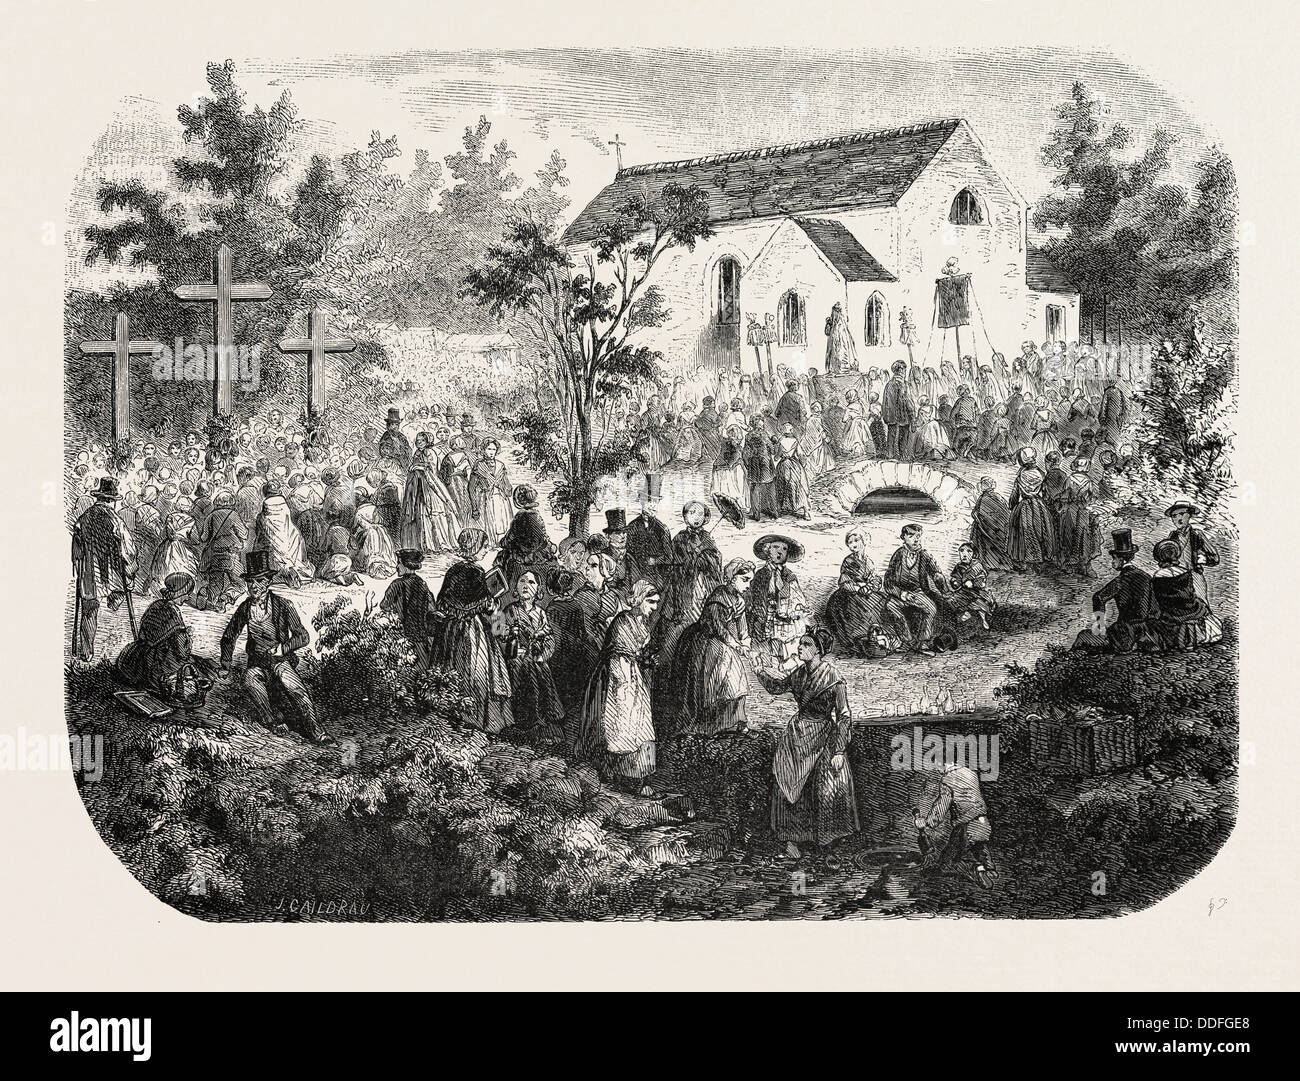 Fete of the Nativity of Our Lady: Pilgrimage to Our Lady of the Angels, Livry (Seine-et-Oise), France, 1855. Engraving - Stock Image